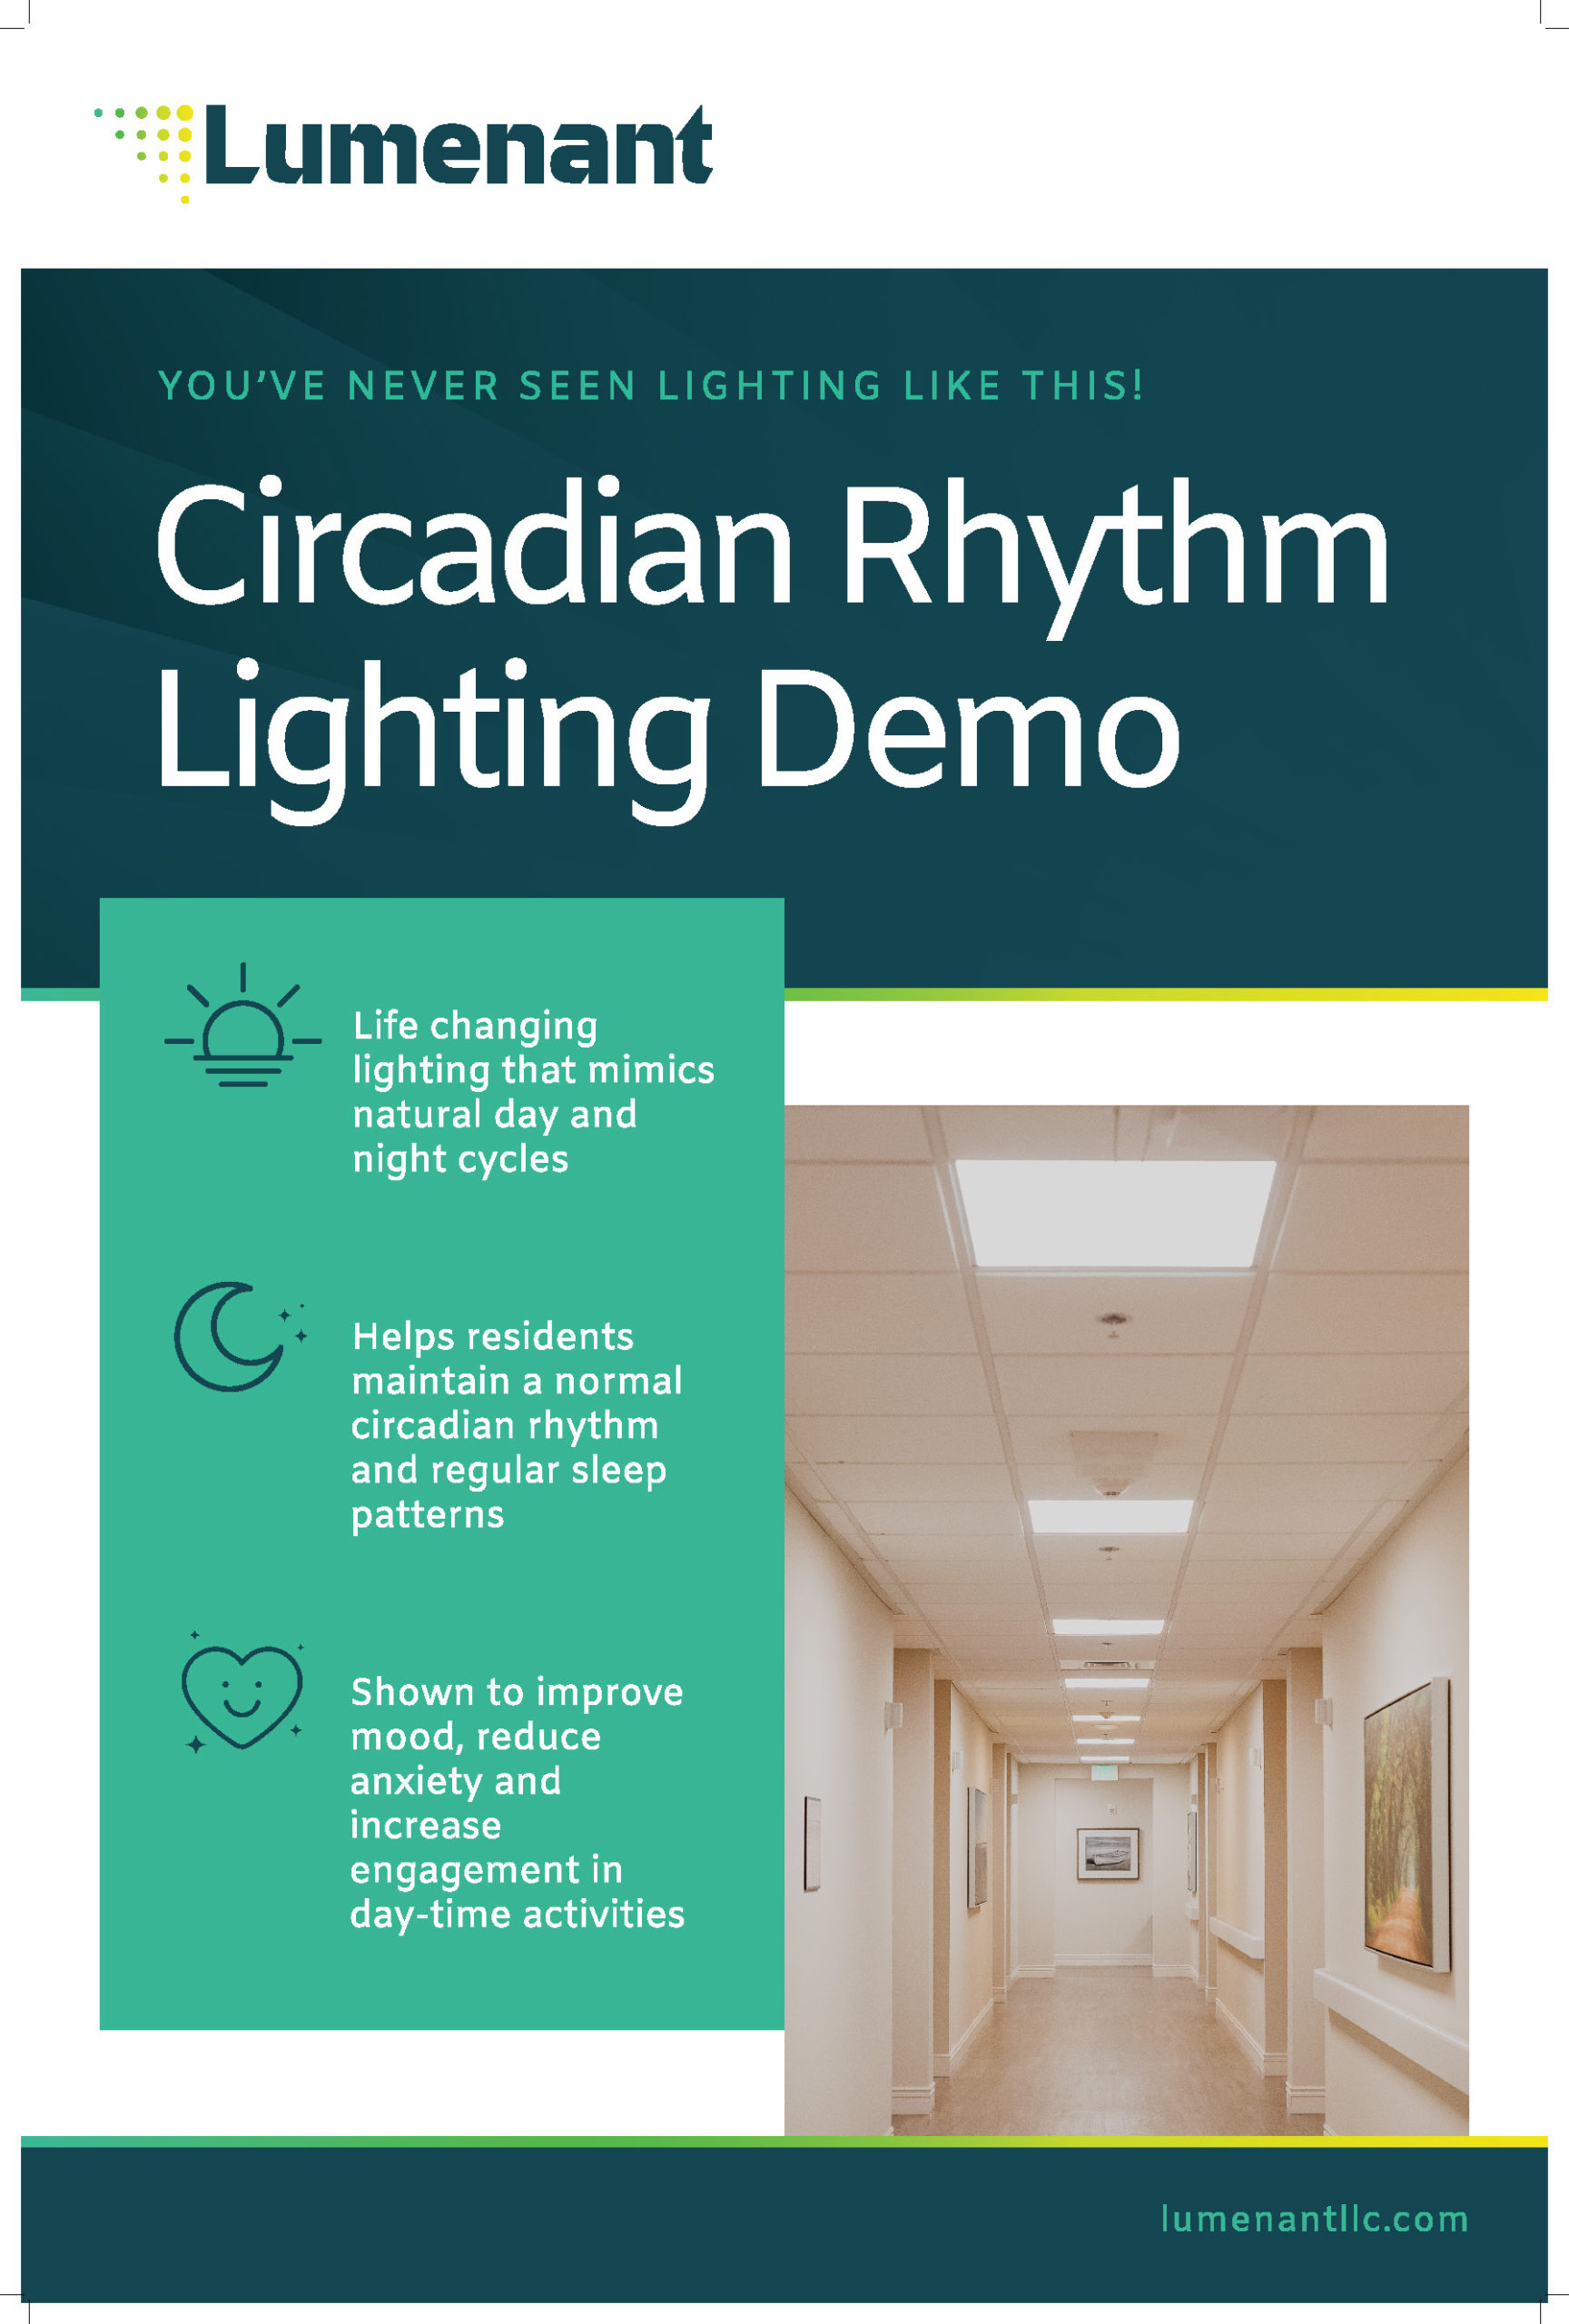 Lumenant Circadian Lighting Demo Sign